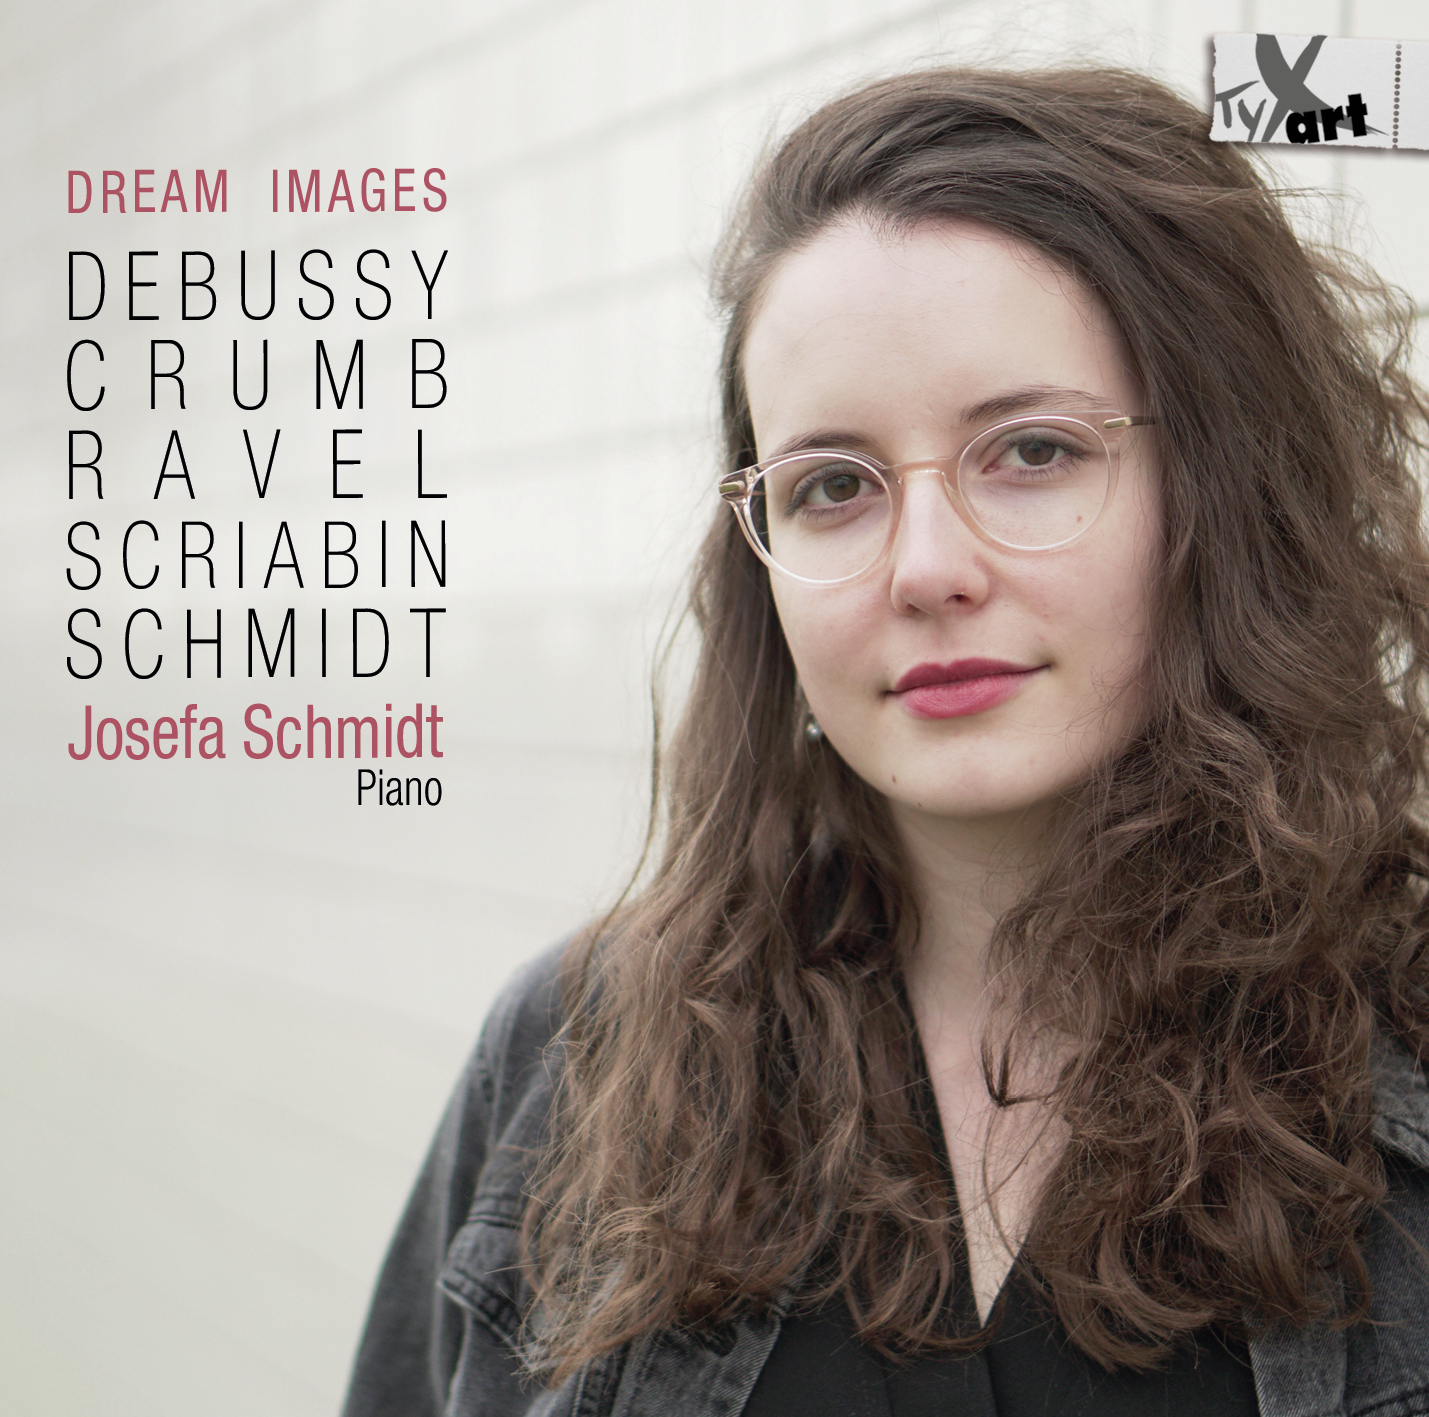 Dream Images - Josefa Schmidt, Klavier